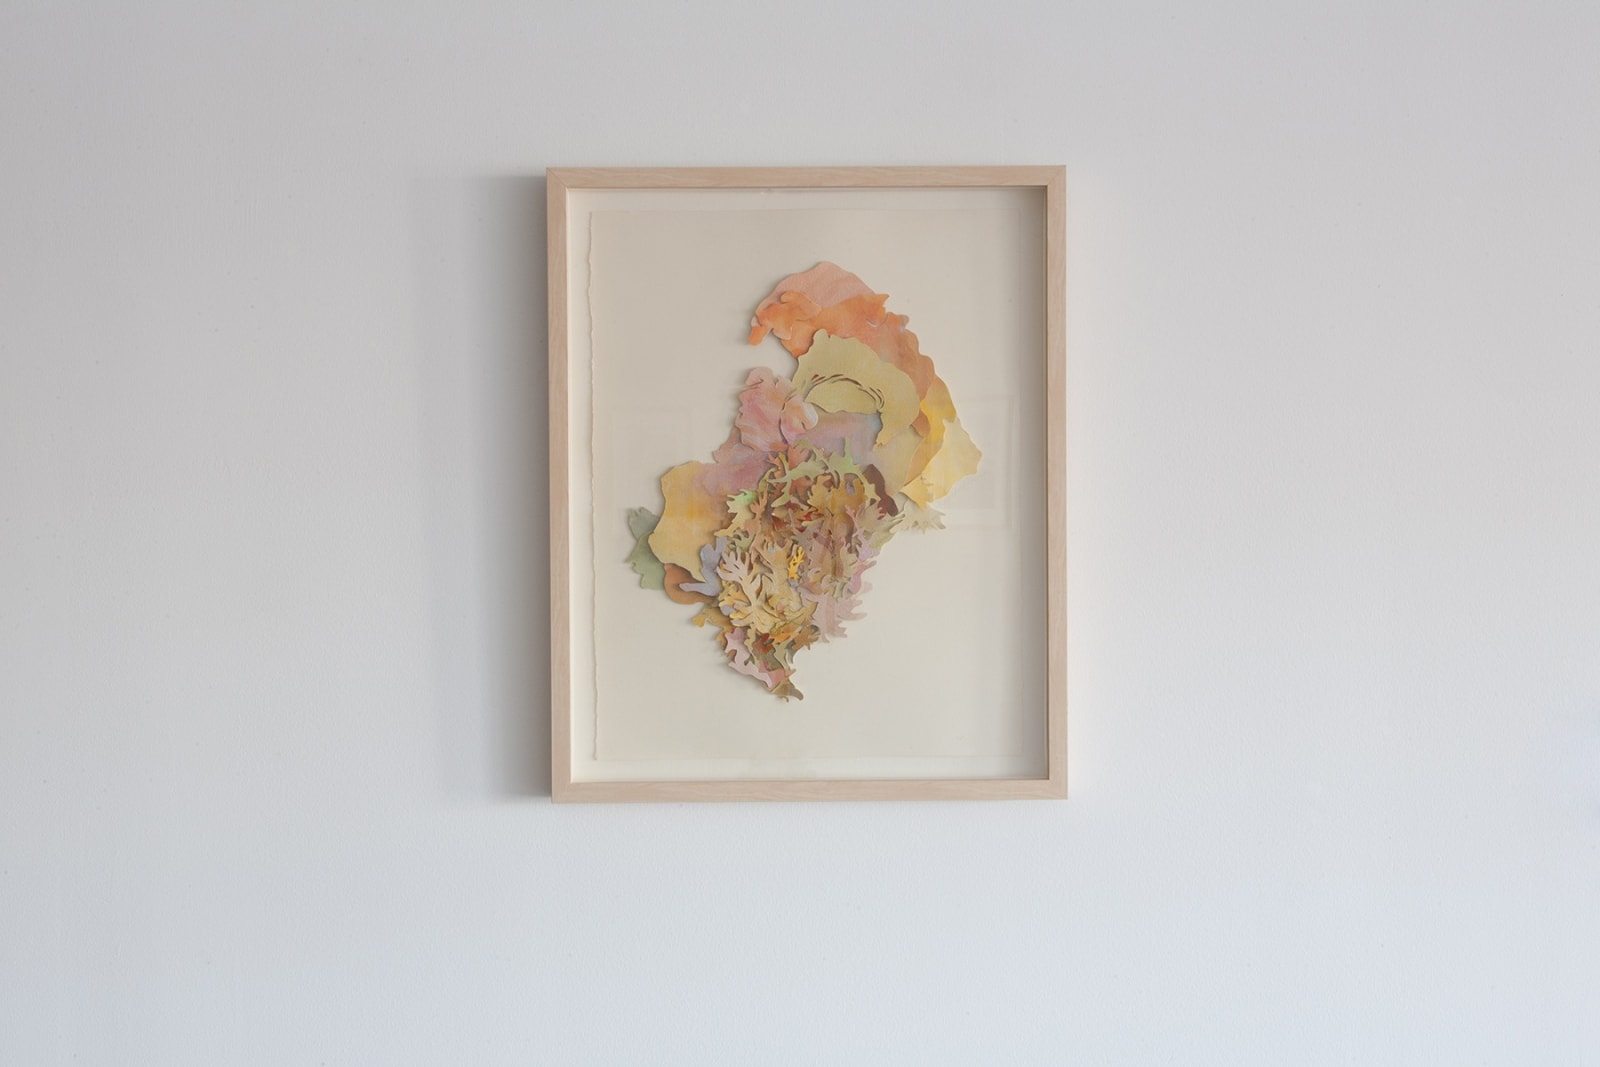 Alexandra Chiou Queen's Bouquet, 2018 acrylic, ink and cut paper 23 ½ x 18 ½ inches, framed $ 1,400.00